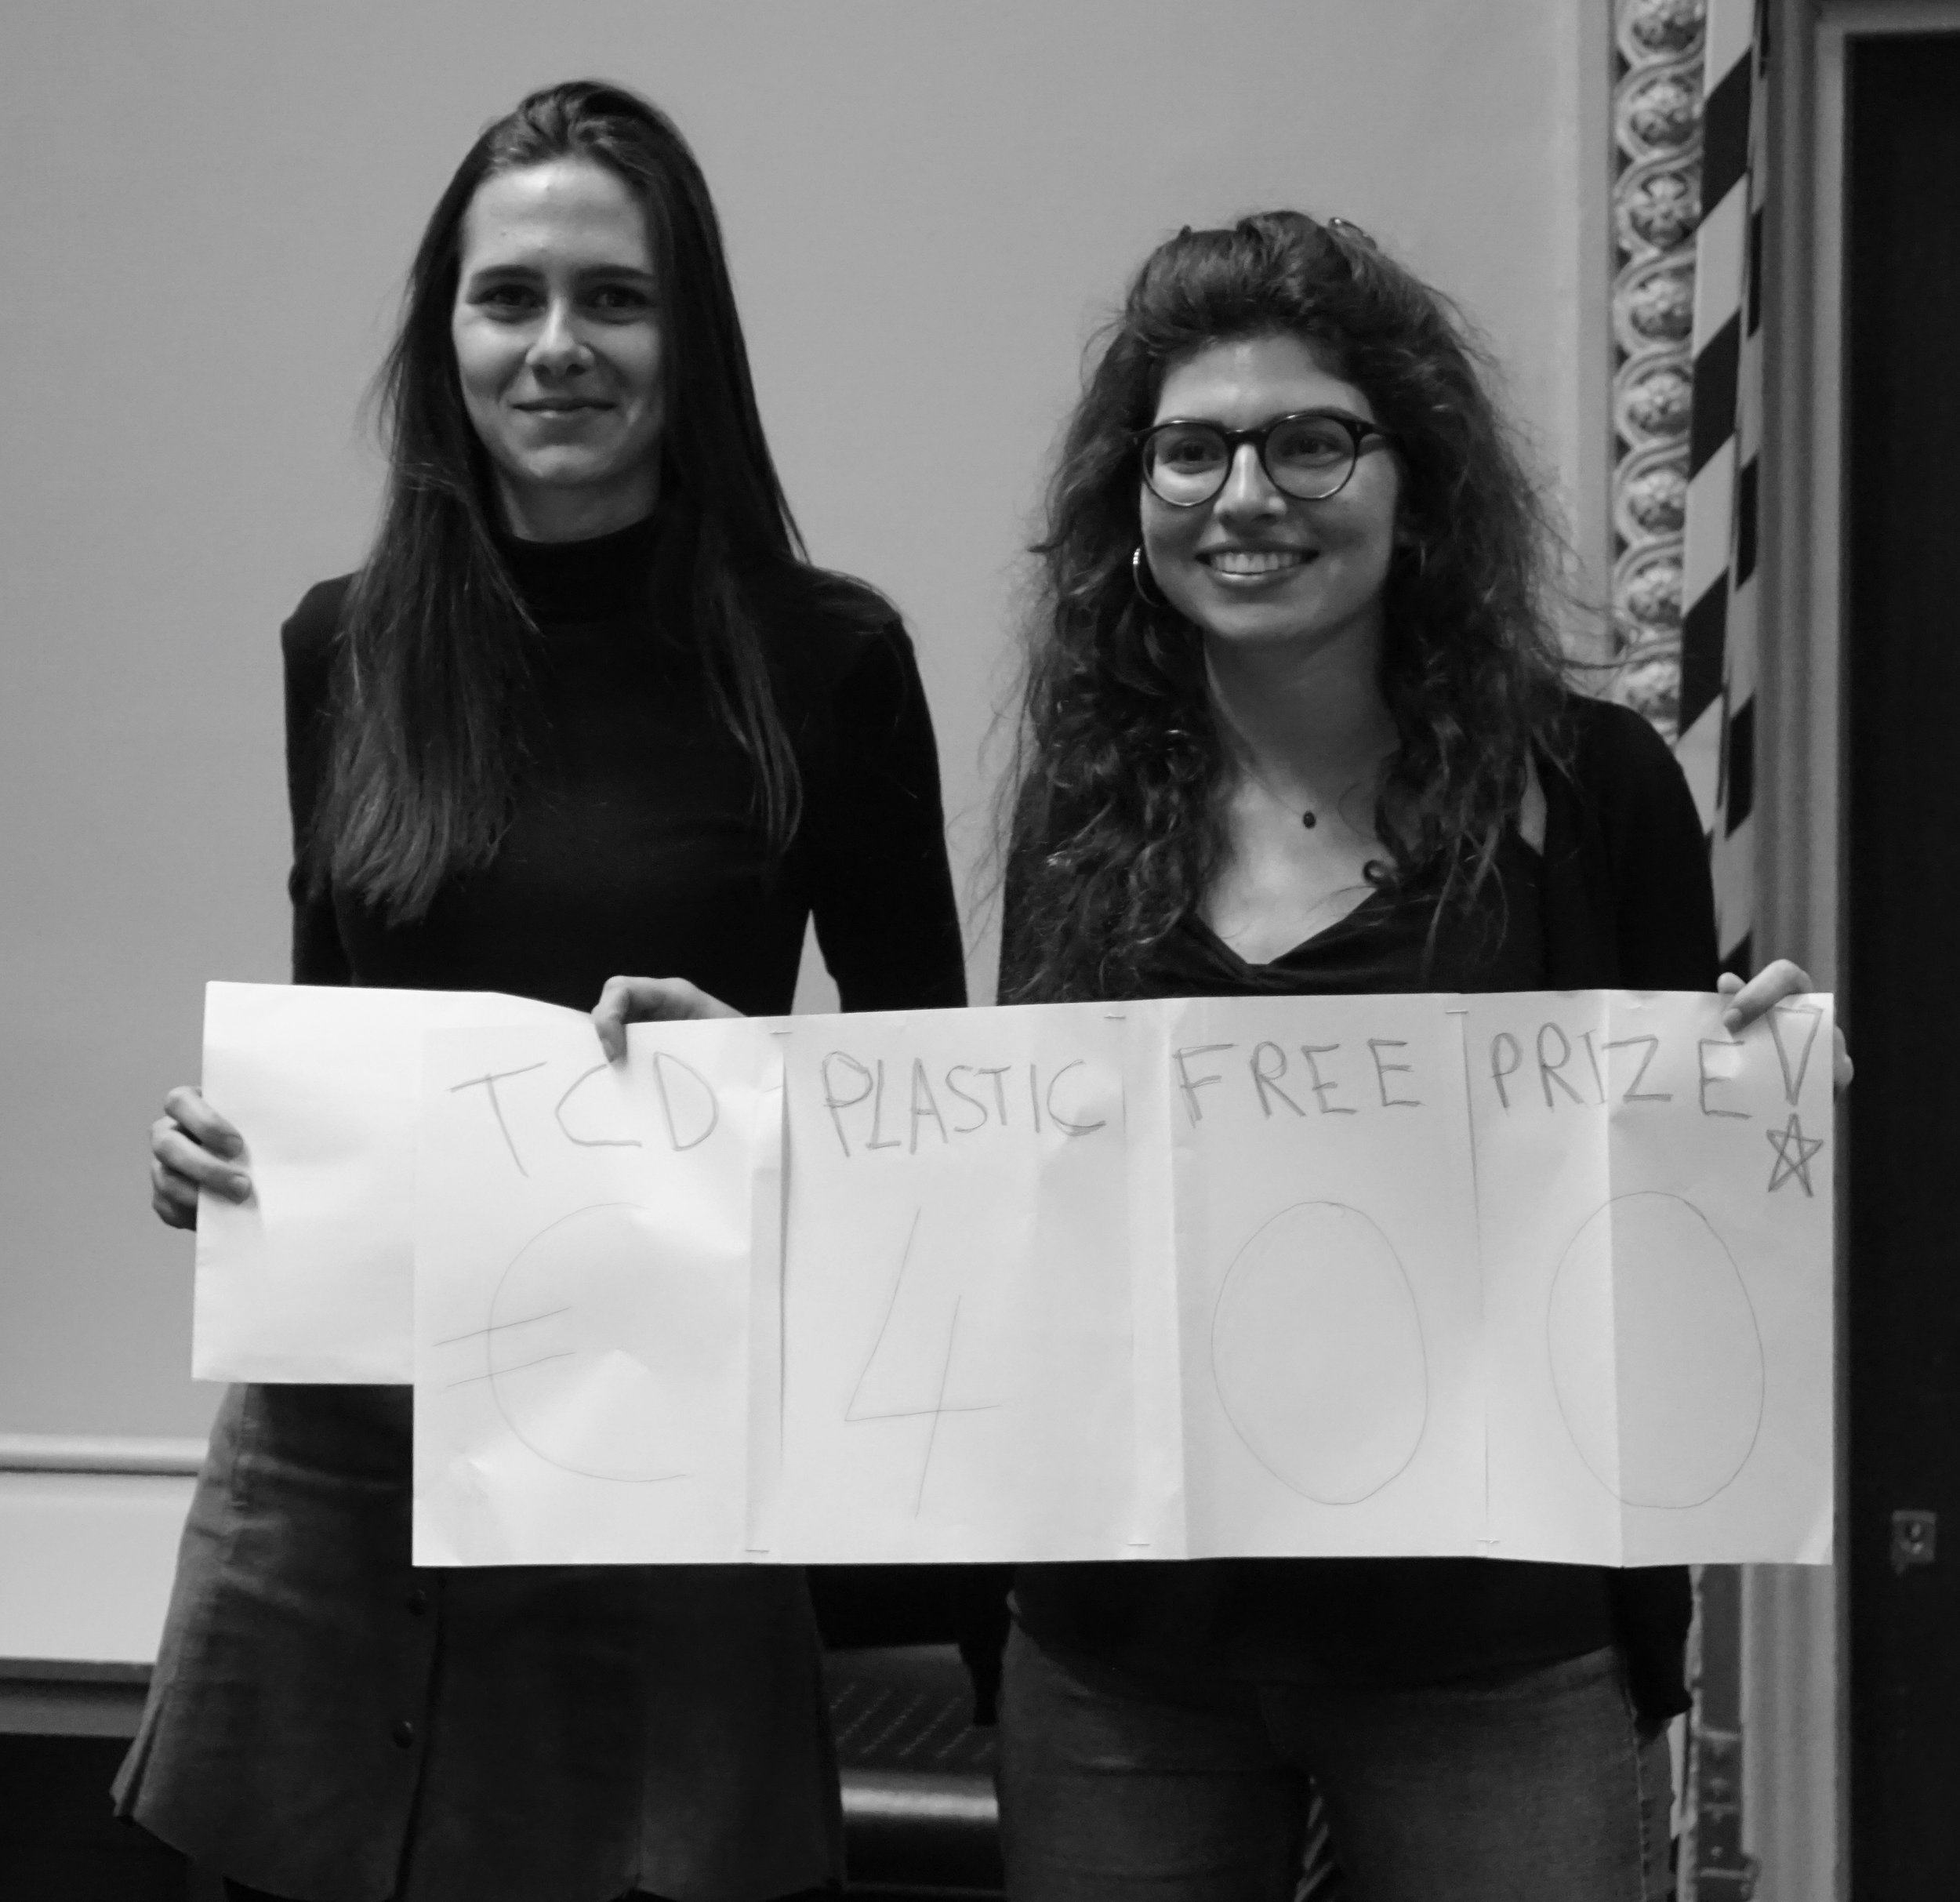 Winners Meryl Merran & Juliette Rontani, taking home top prize with their concept of a Trinity flask which can be combined with an ID card.